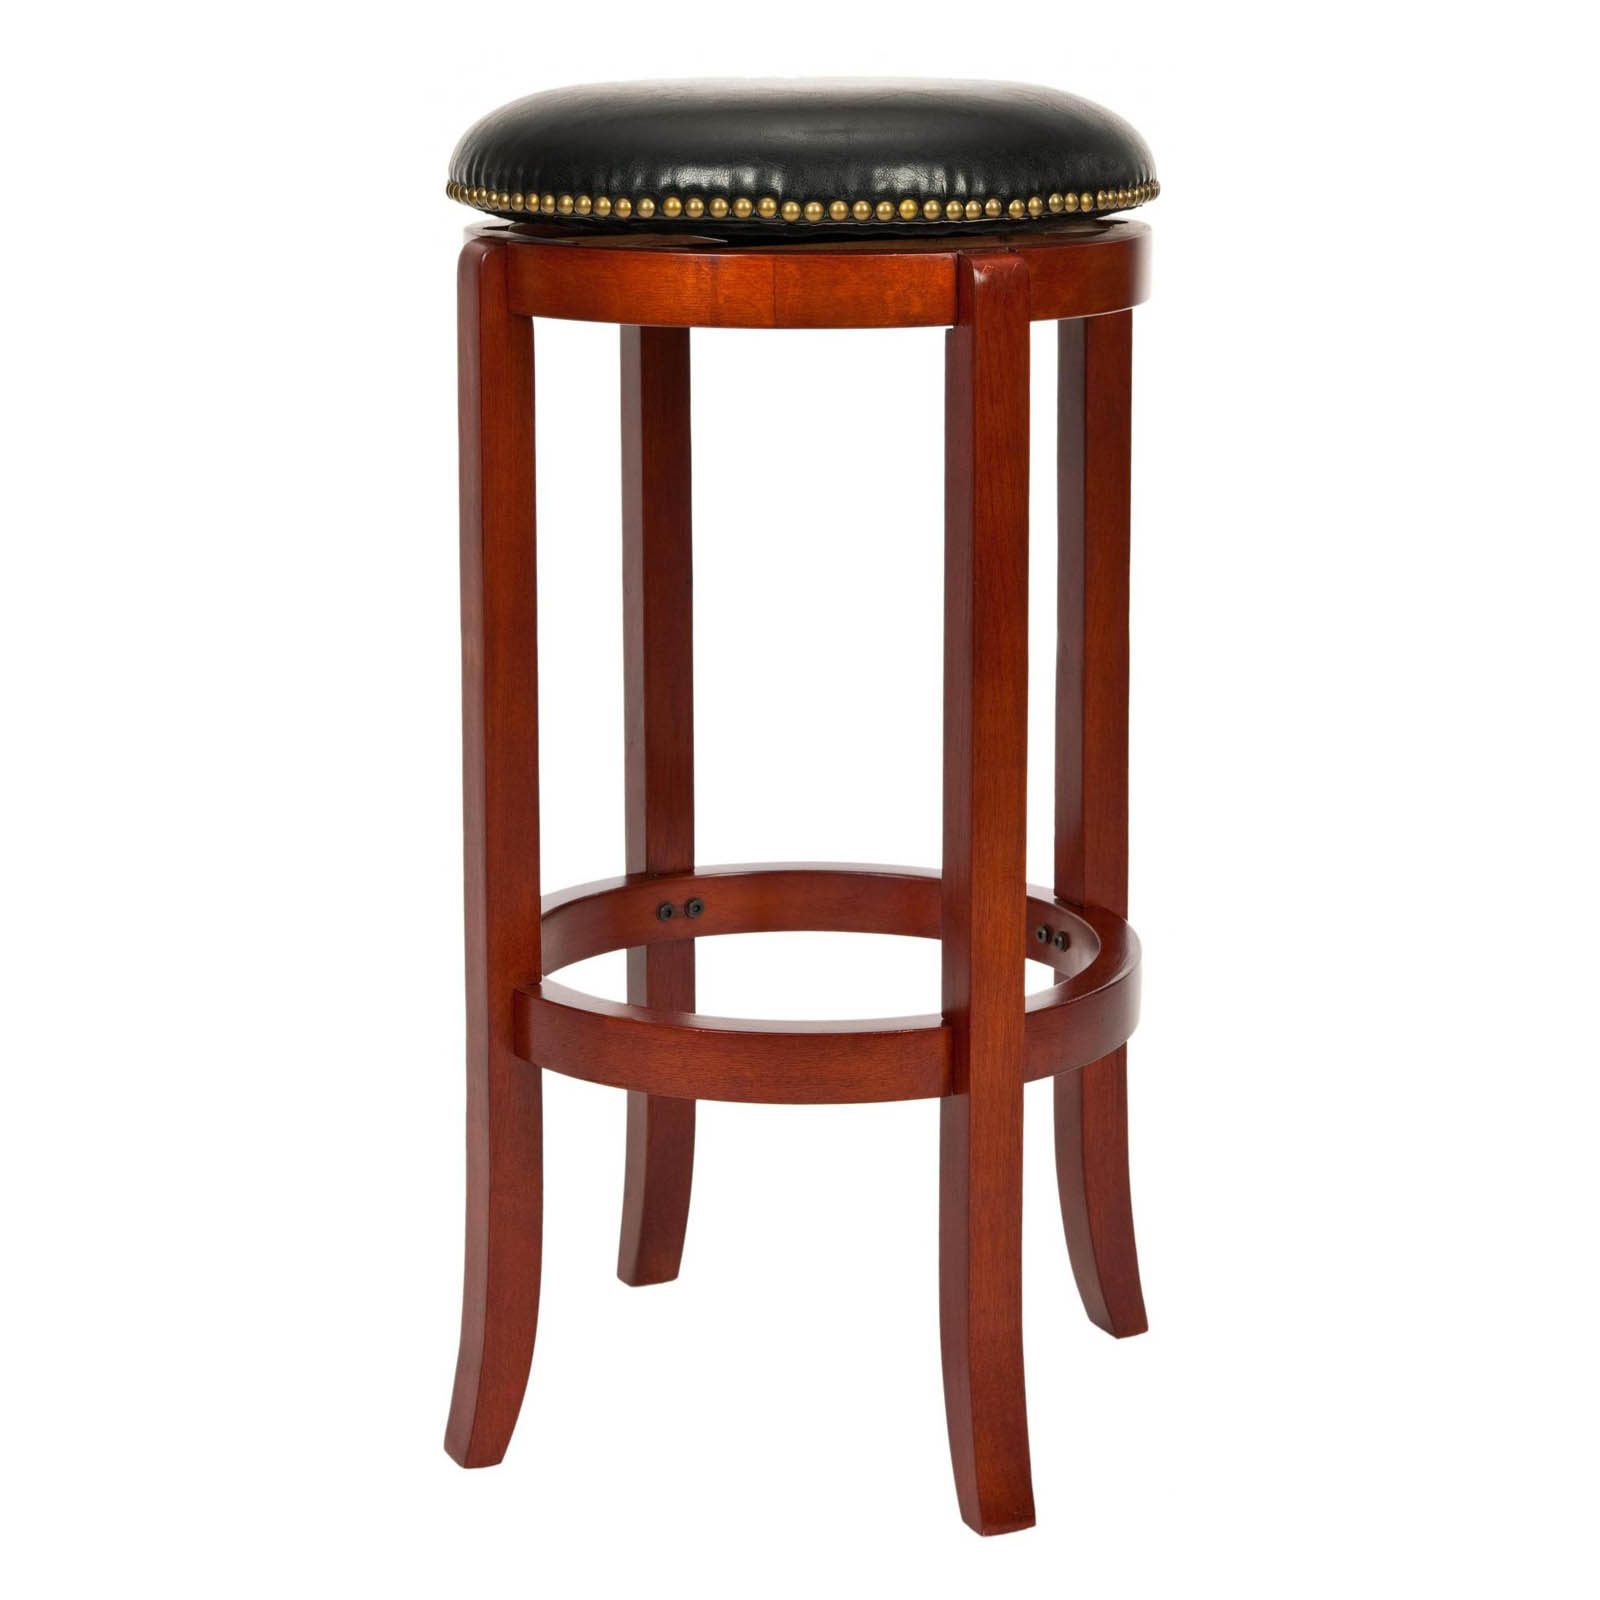 Safavieh Aiden 24 in Backless Counter Stool Light  : masterSAV3476 from barstools.com size 1600 x 1600 jpeg 87kB